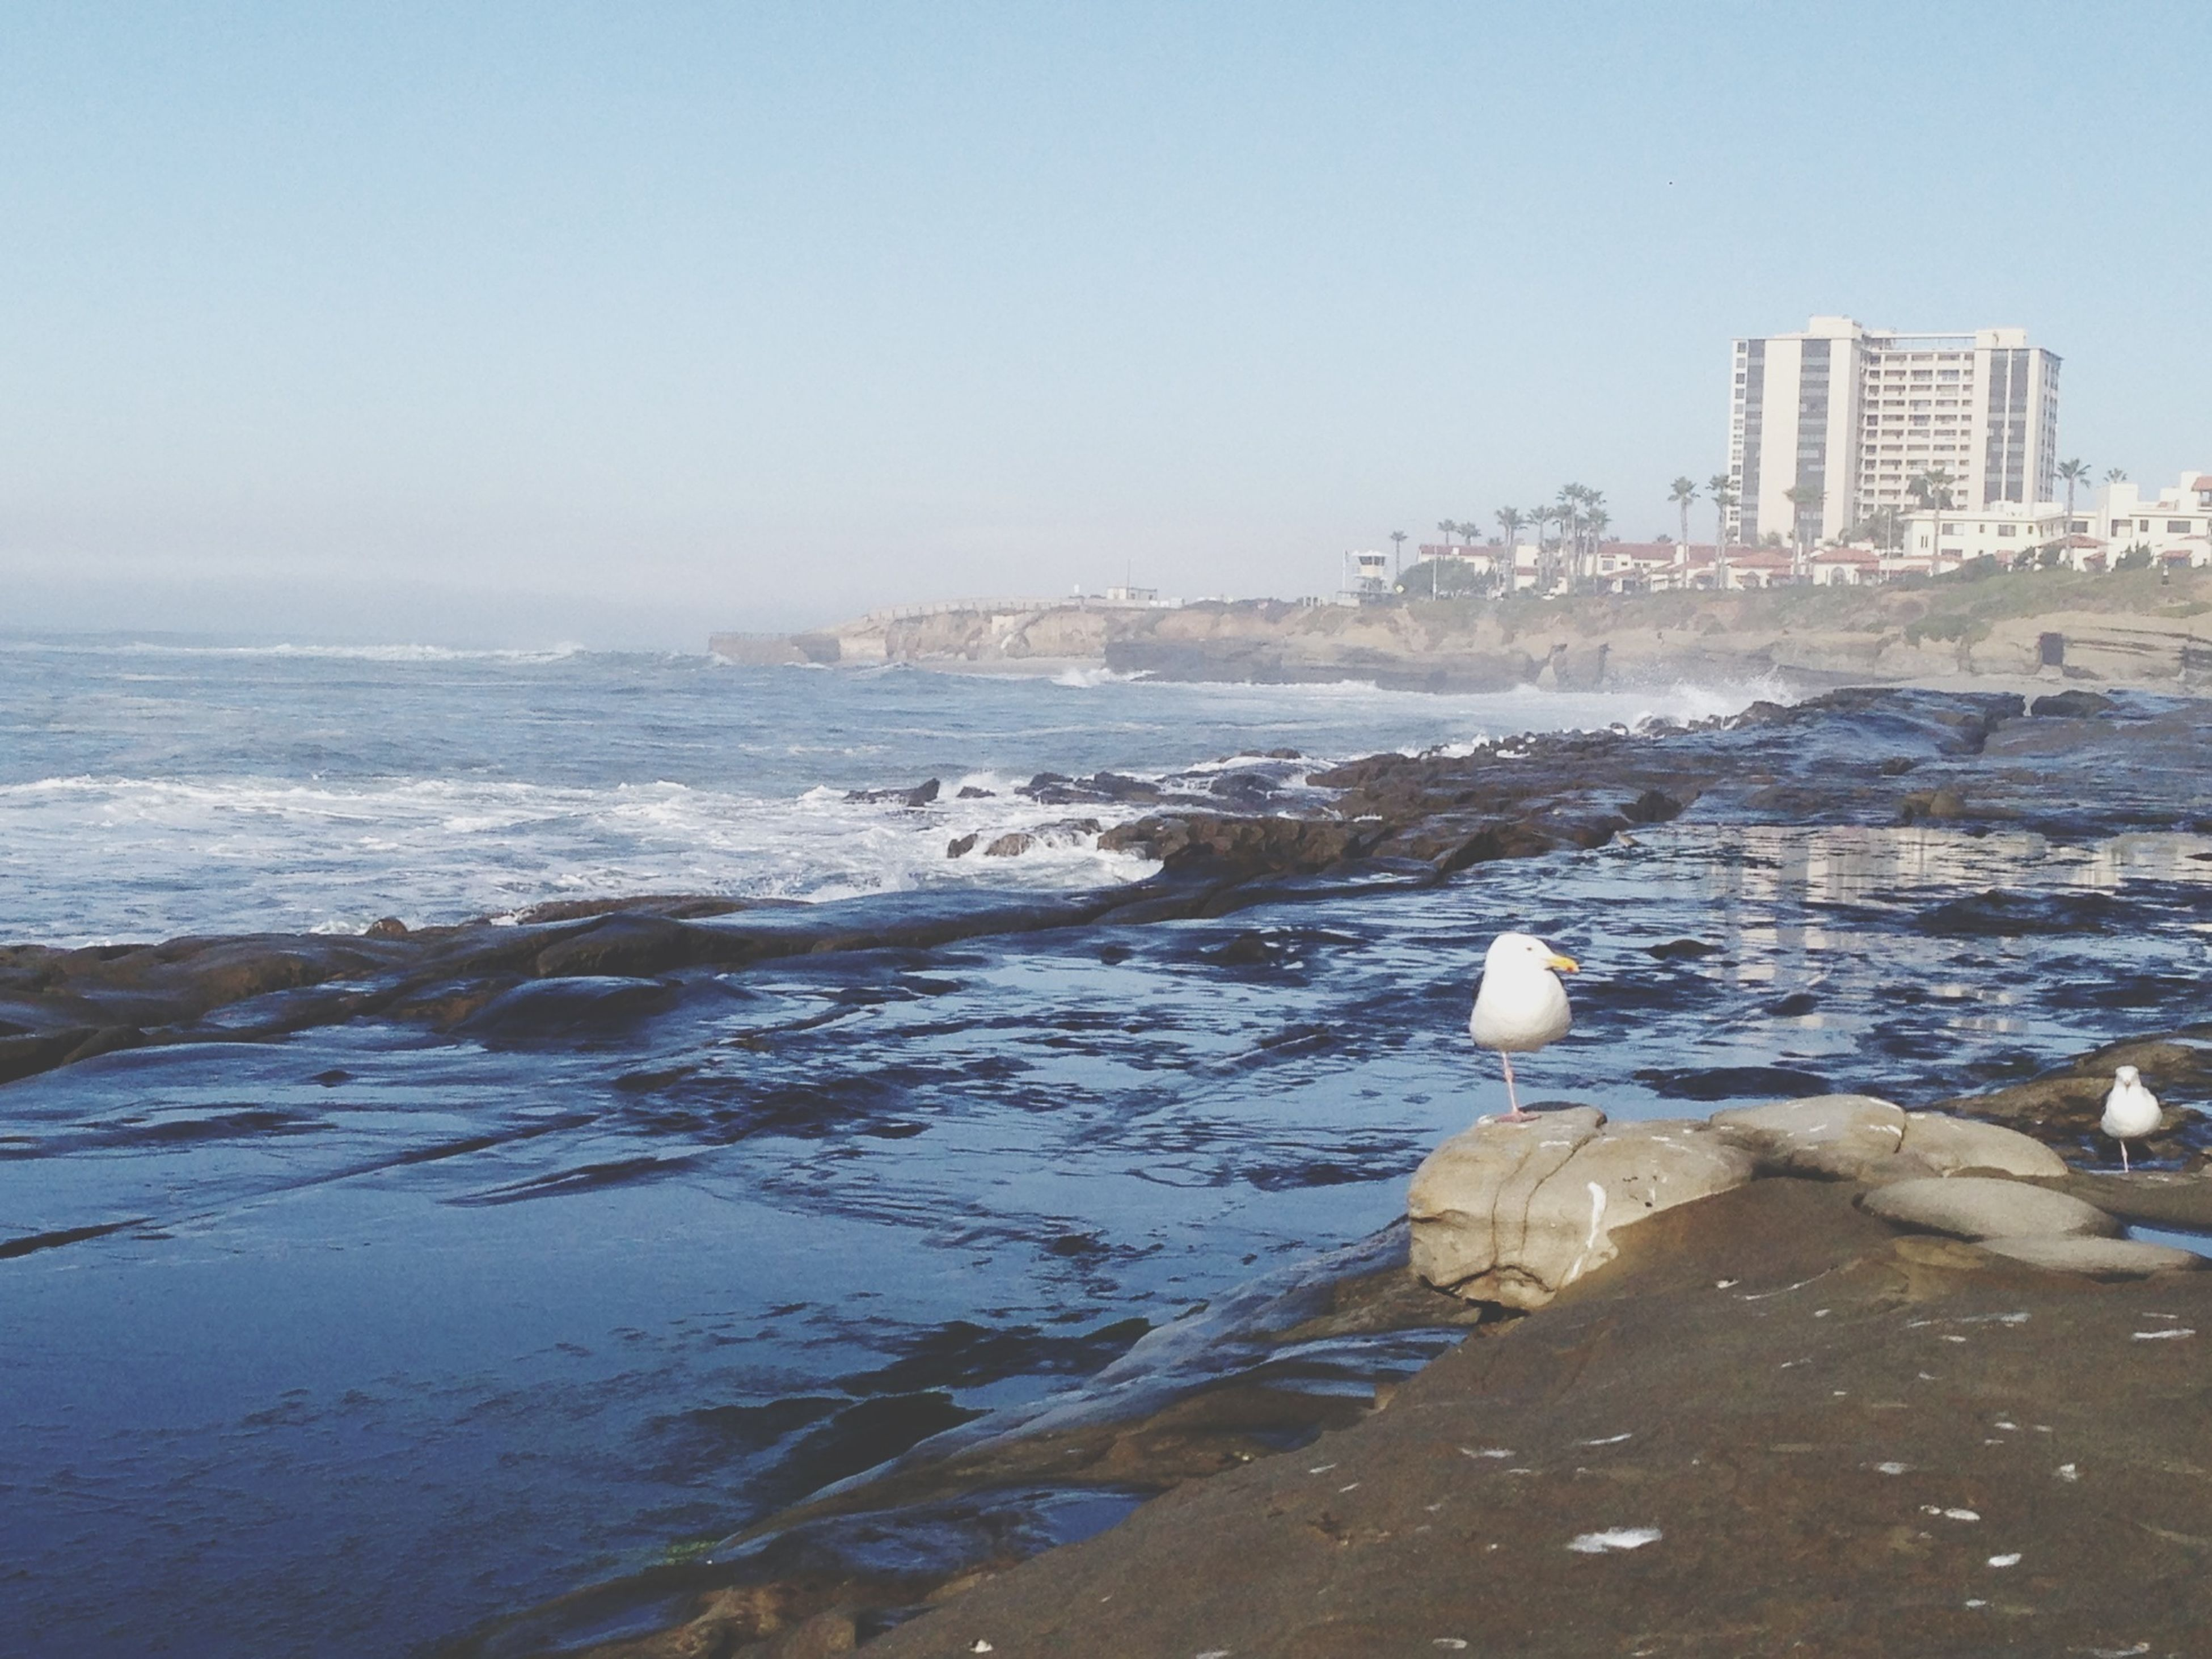 water, sea, clear sky, bird, copy space, beach, shore, tranquility, scenics, tranquil scene, nature, beauty in nature, rock - object, animal themes, seagull, sky, one animal, animals in the wild, horizon over water, day